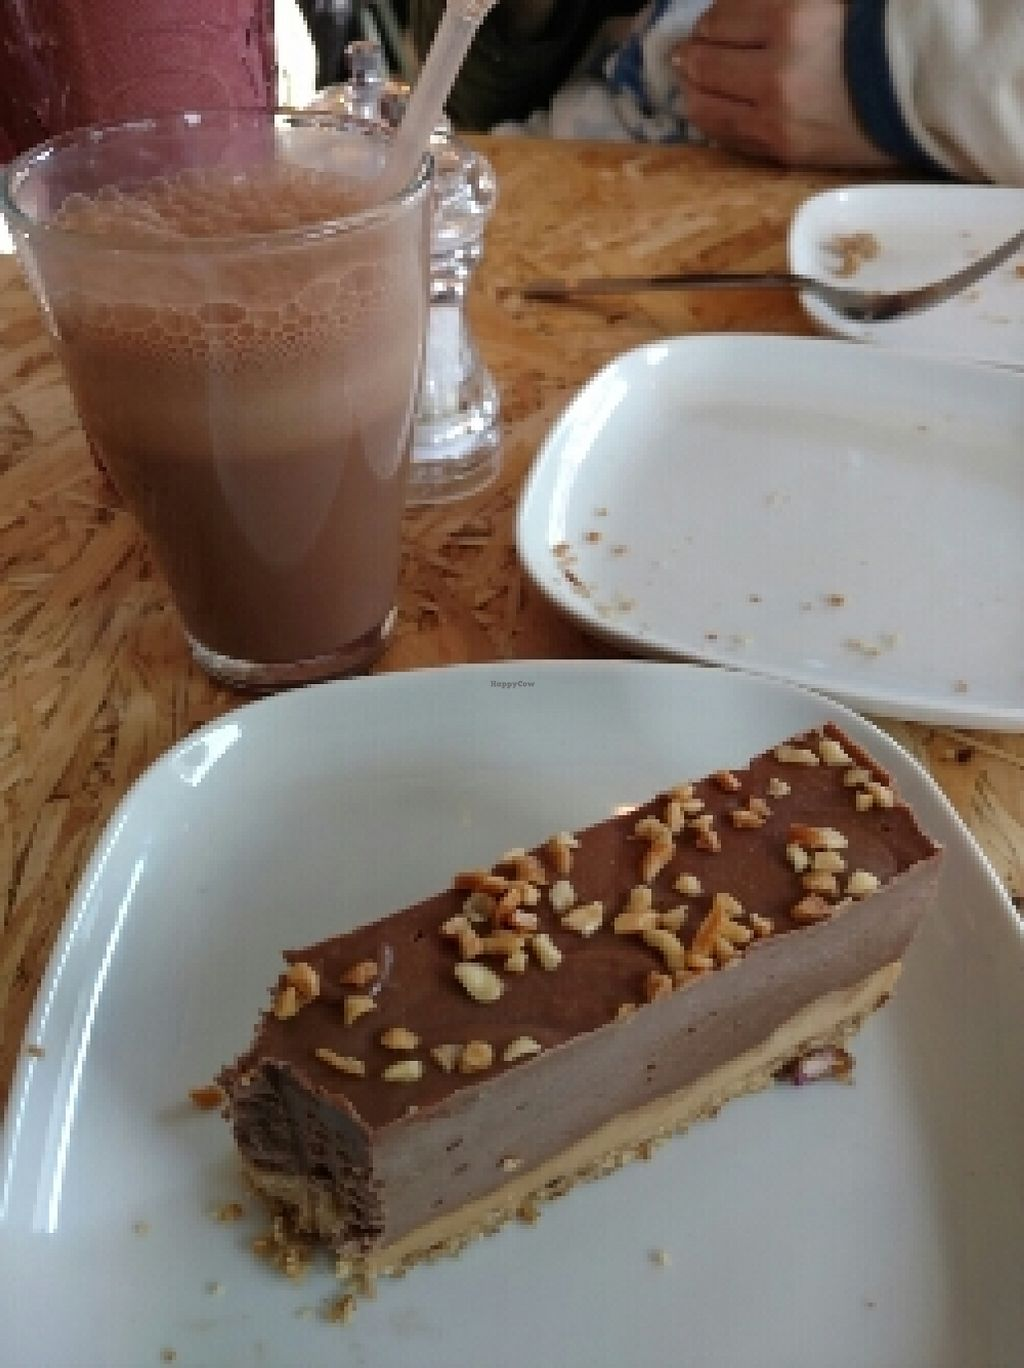 """Photo of CLOSED: Urban Zen  by <a href=""""/members/profile/msangeliic"""">msangeliic</a> <br/>yummy cake <br/> March 16, 2016  - <a href='/contact/abuse/image/65198/140141'>Report</a>"""